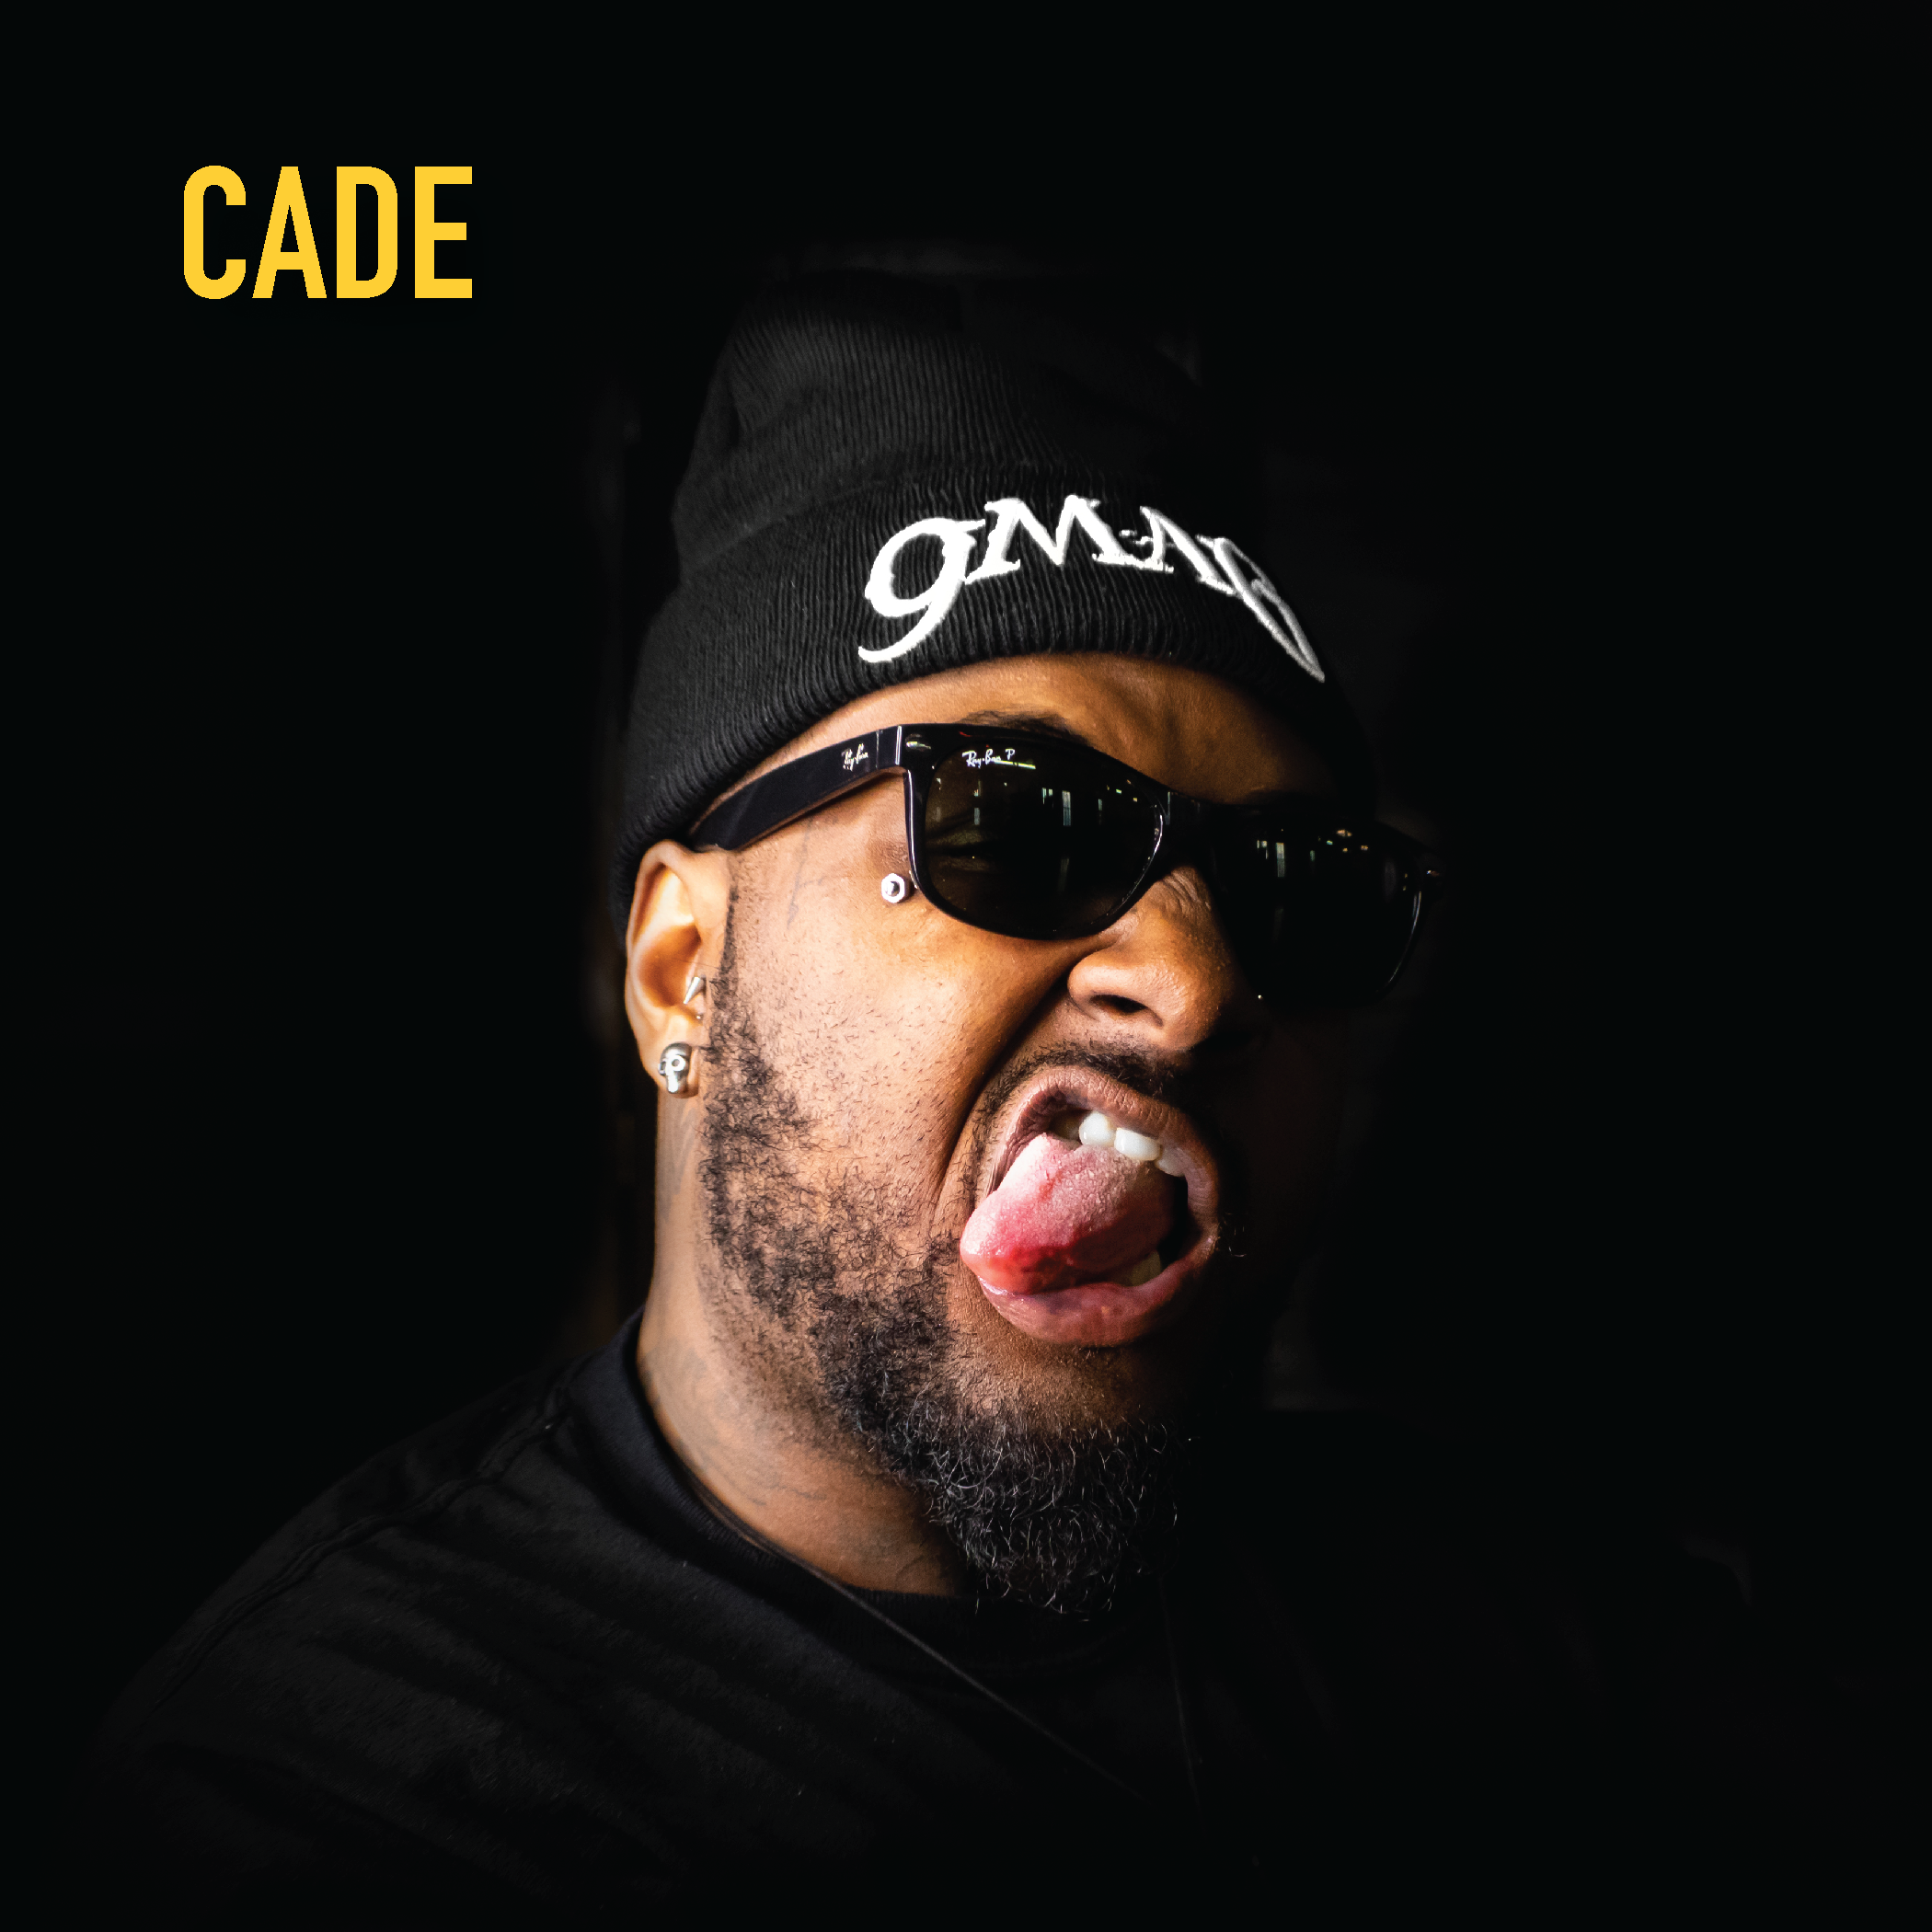 cade_profile_front-28.png